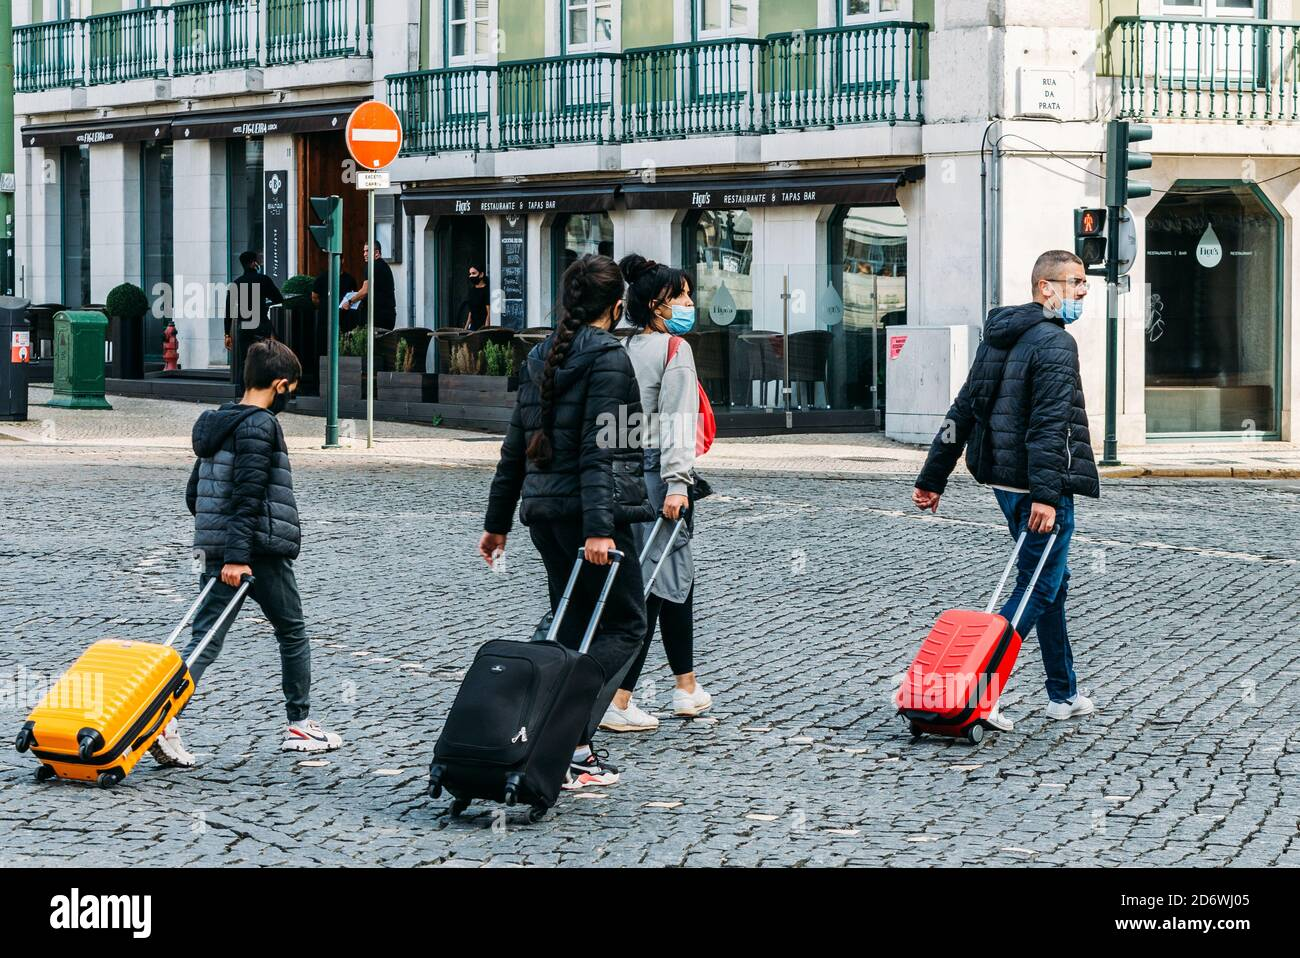 lisbon-portugal-october-18-2020-family-each-wearing-face-masks-carrying-luggage-in-the-historic-centre-of-lisbon-portugal-travel-during-covid-2D6WJ05.jpg